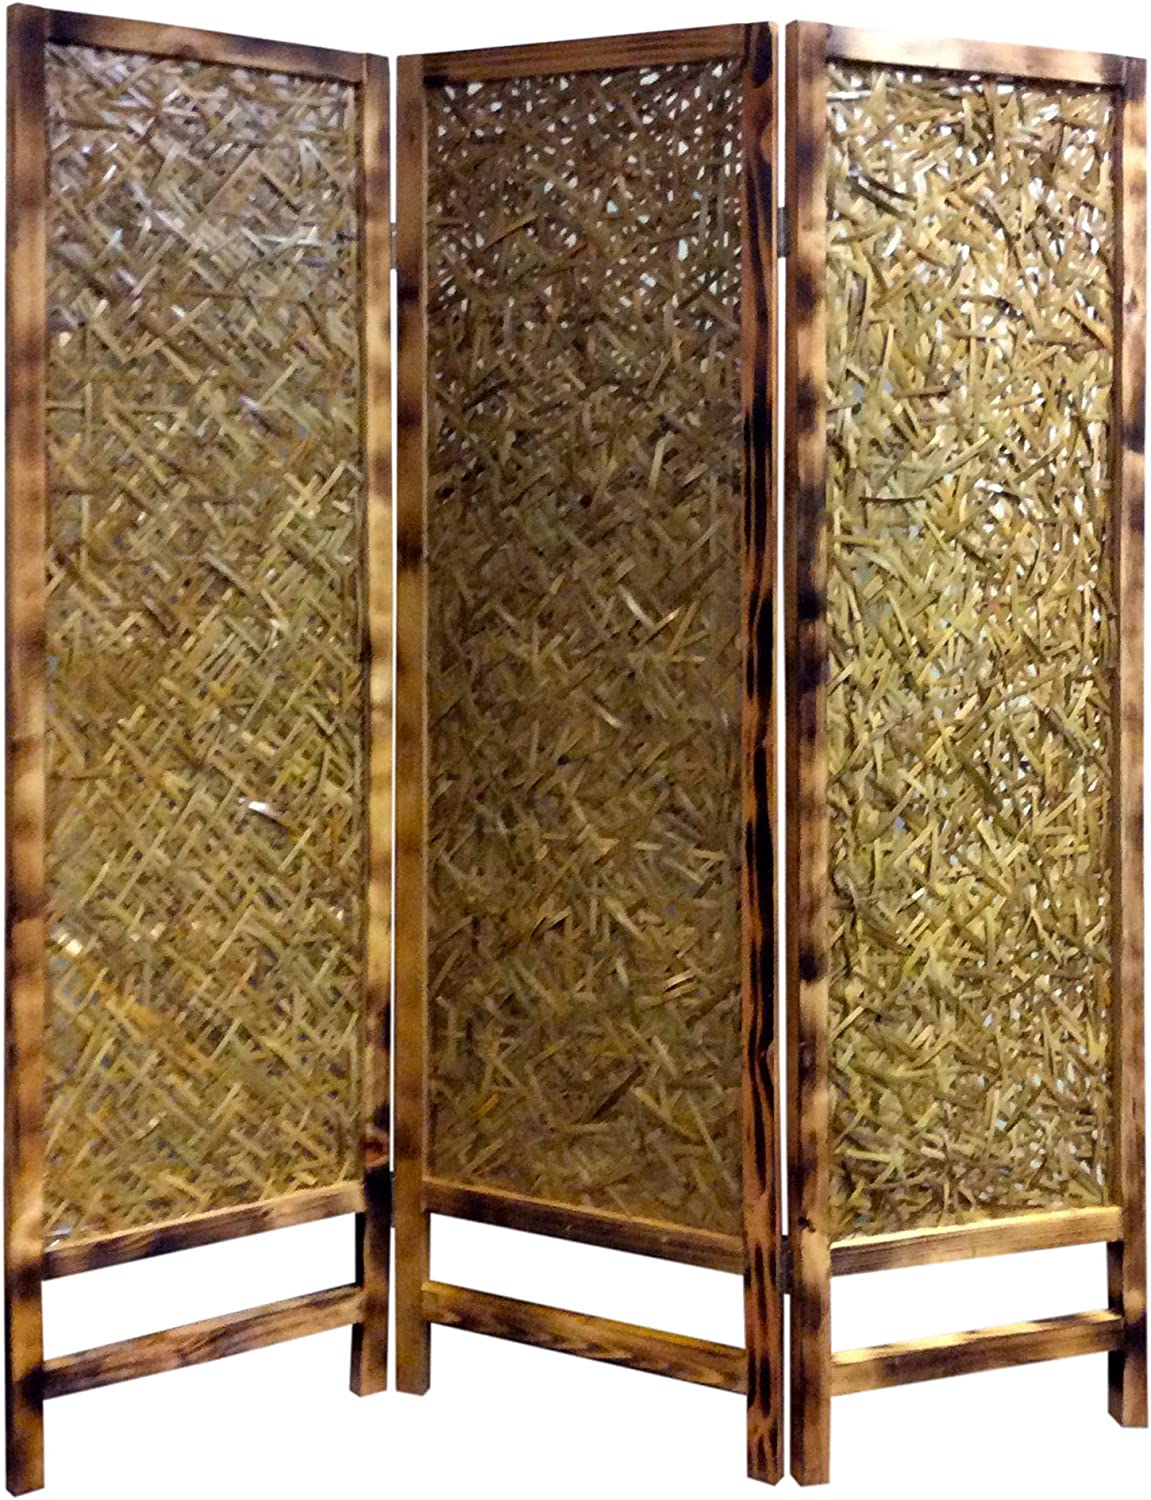 Benjara 3 Panel Traditional Foldable Screen with Entwine Bamboo Design, Brown